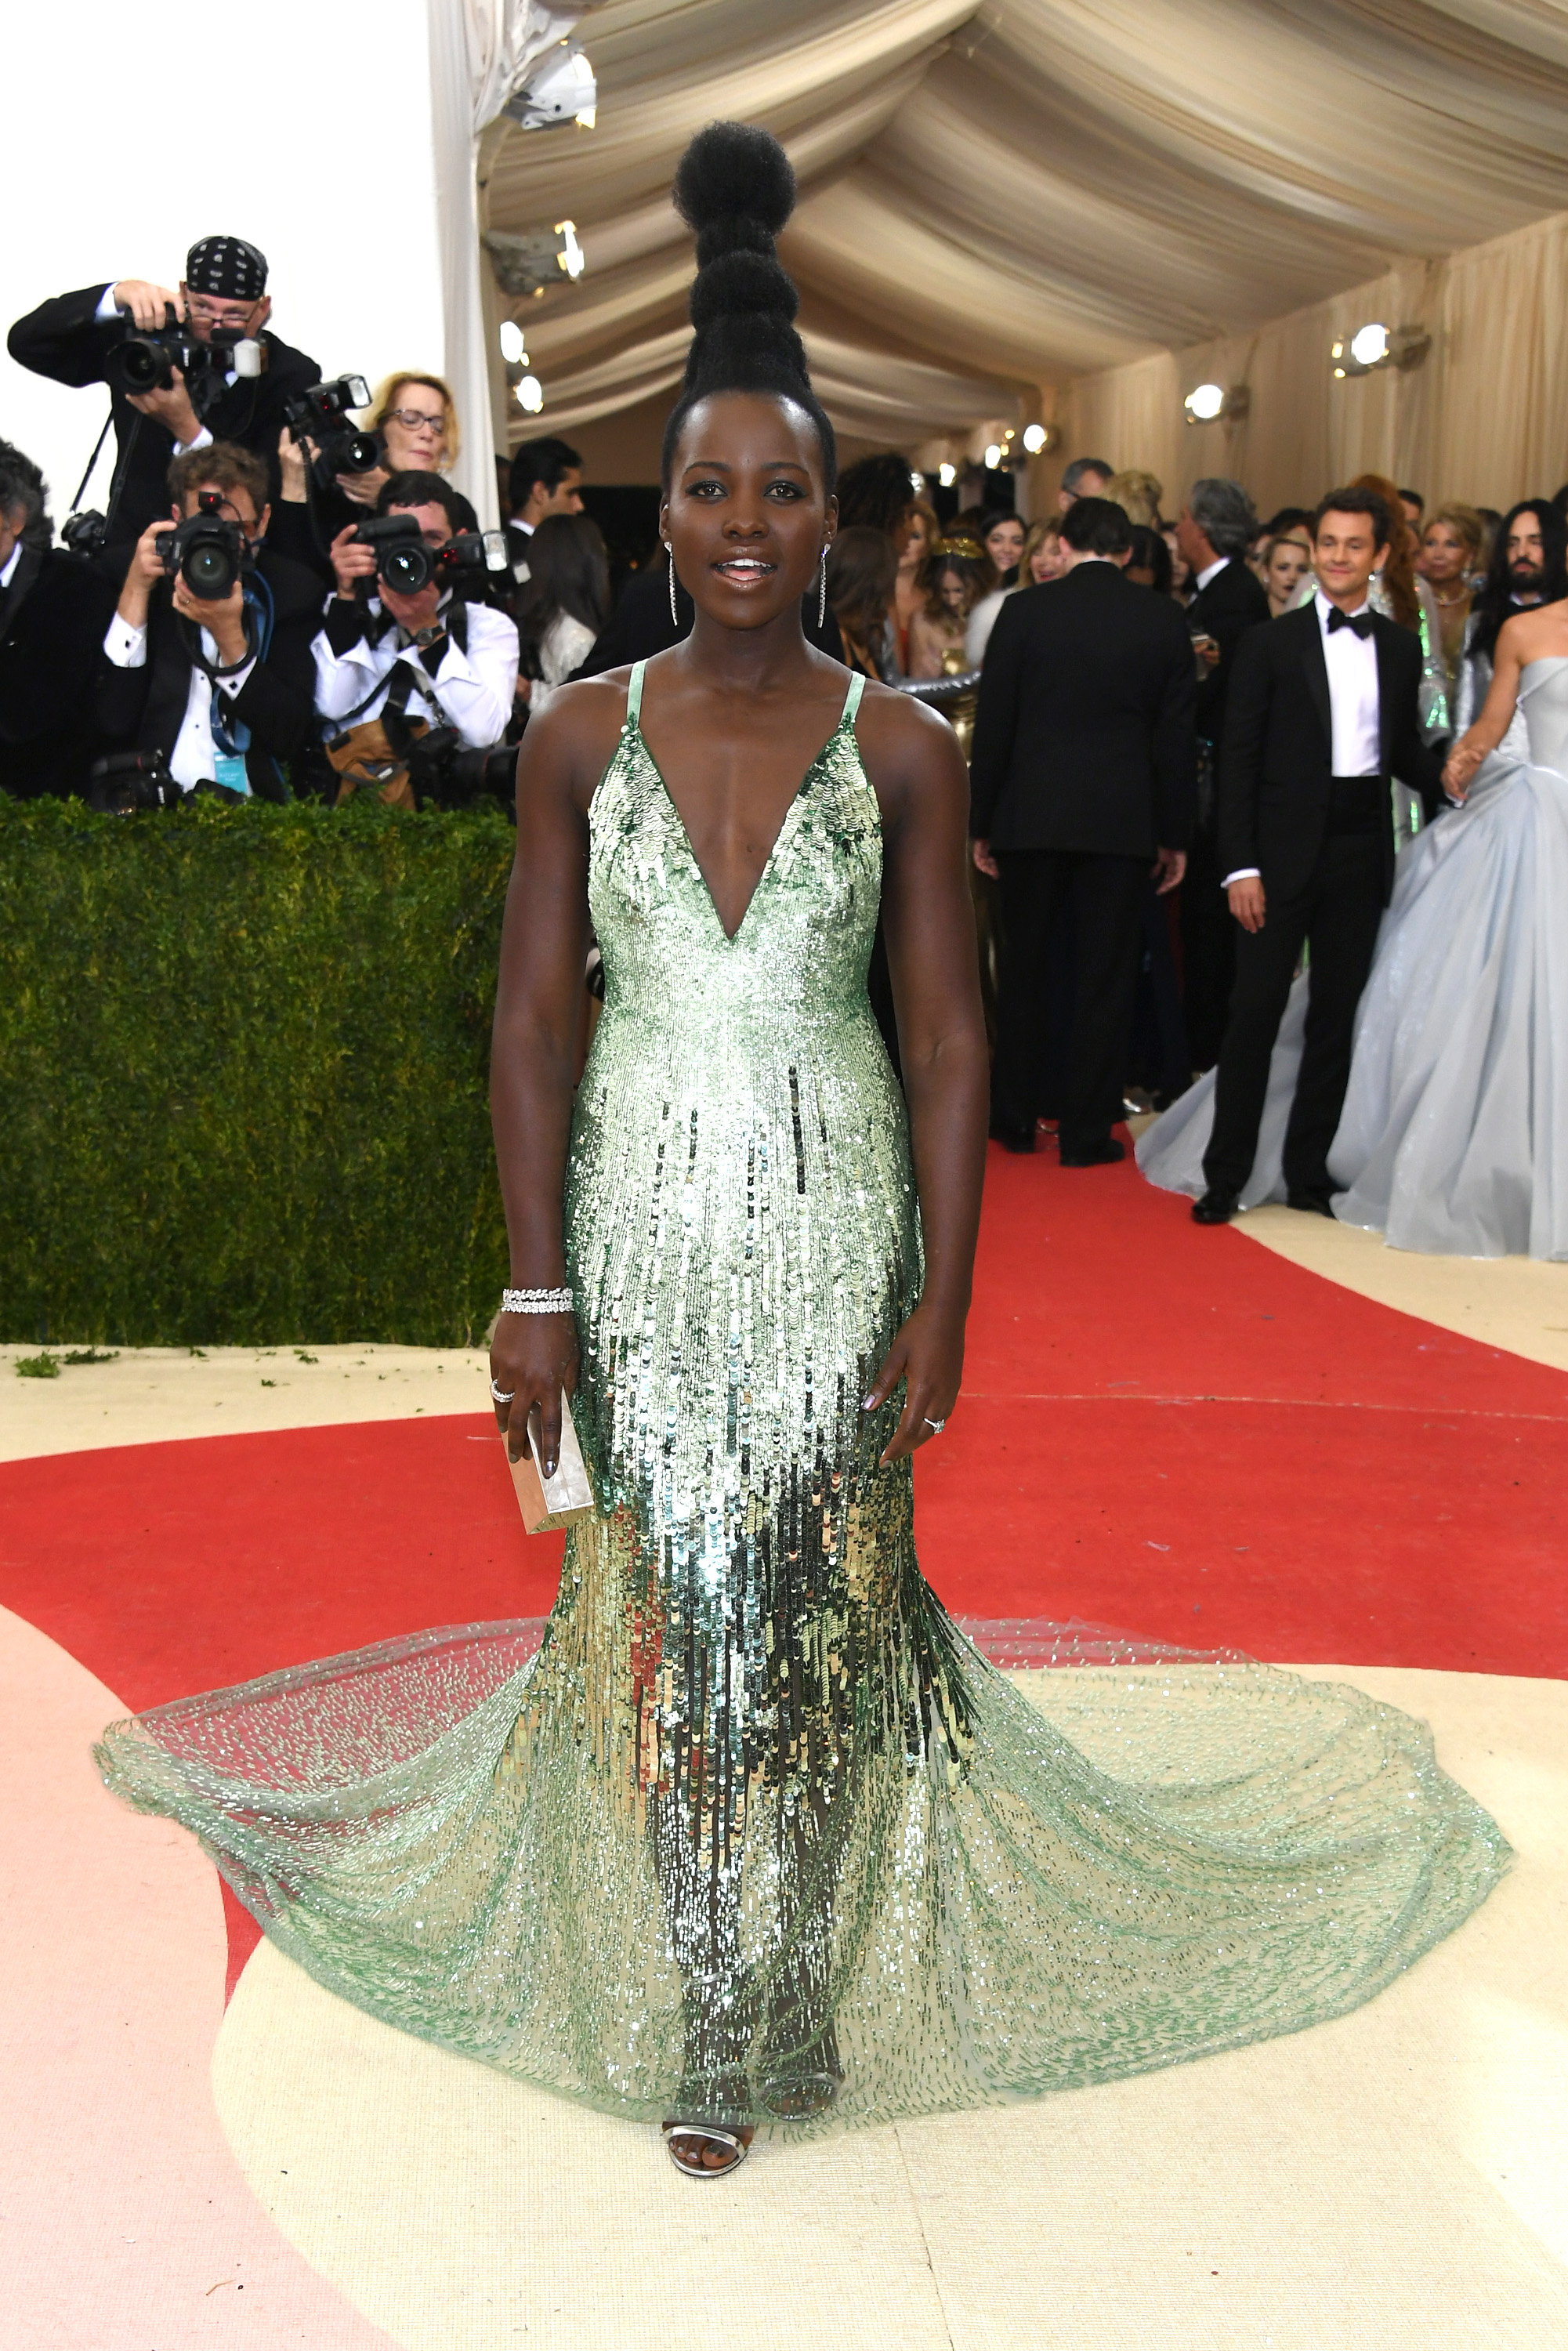 """NEW YORK, NY - MAY 02: Actress Lupita Nyong'o attends the """"Manus x Machina: Fashion In An Age Of Technology"""" Costume Institute Gala at Metropolitan Museum of Art on May 2, 2016 in New York City. (Photo by Larry Busacca/Getty Images)"""